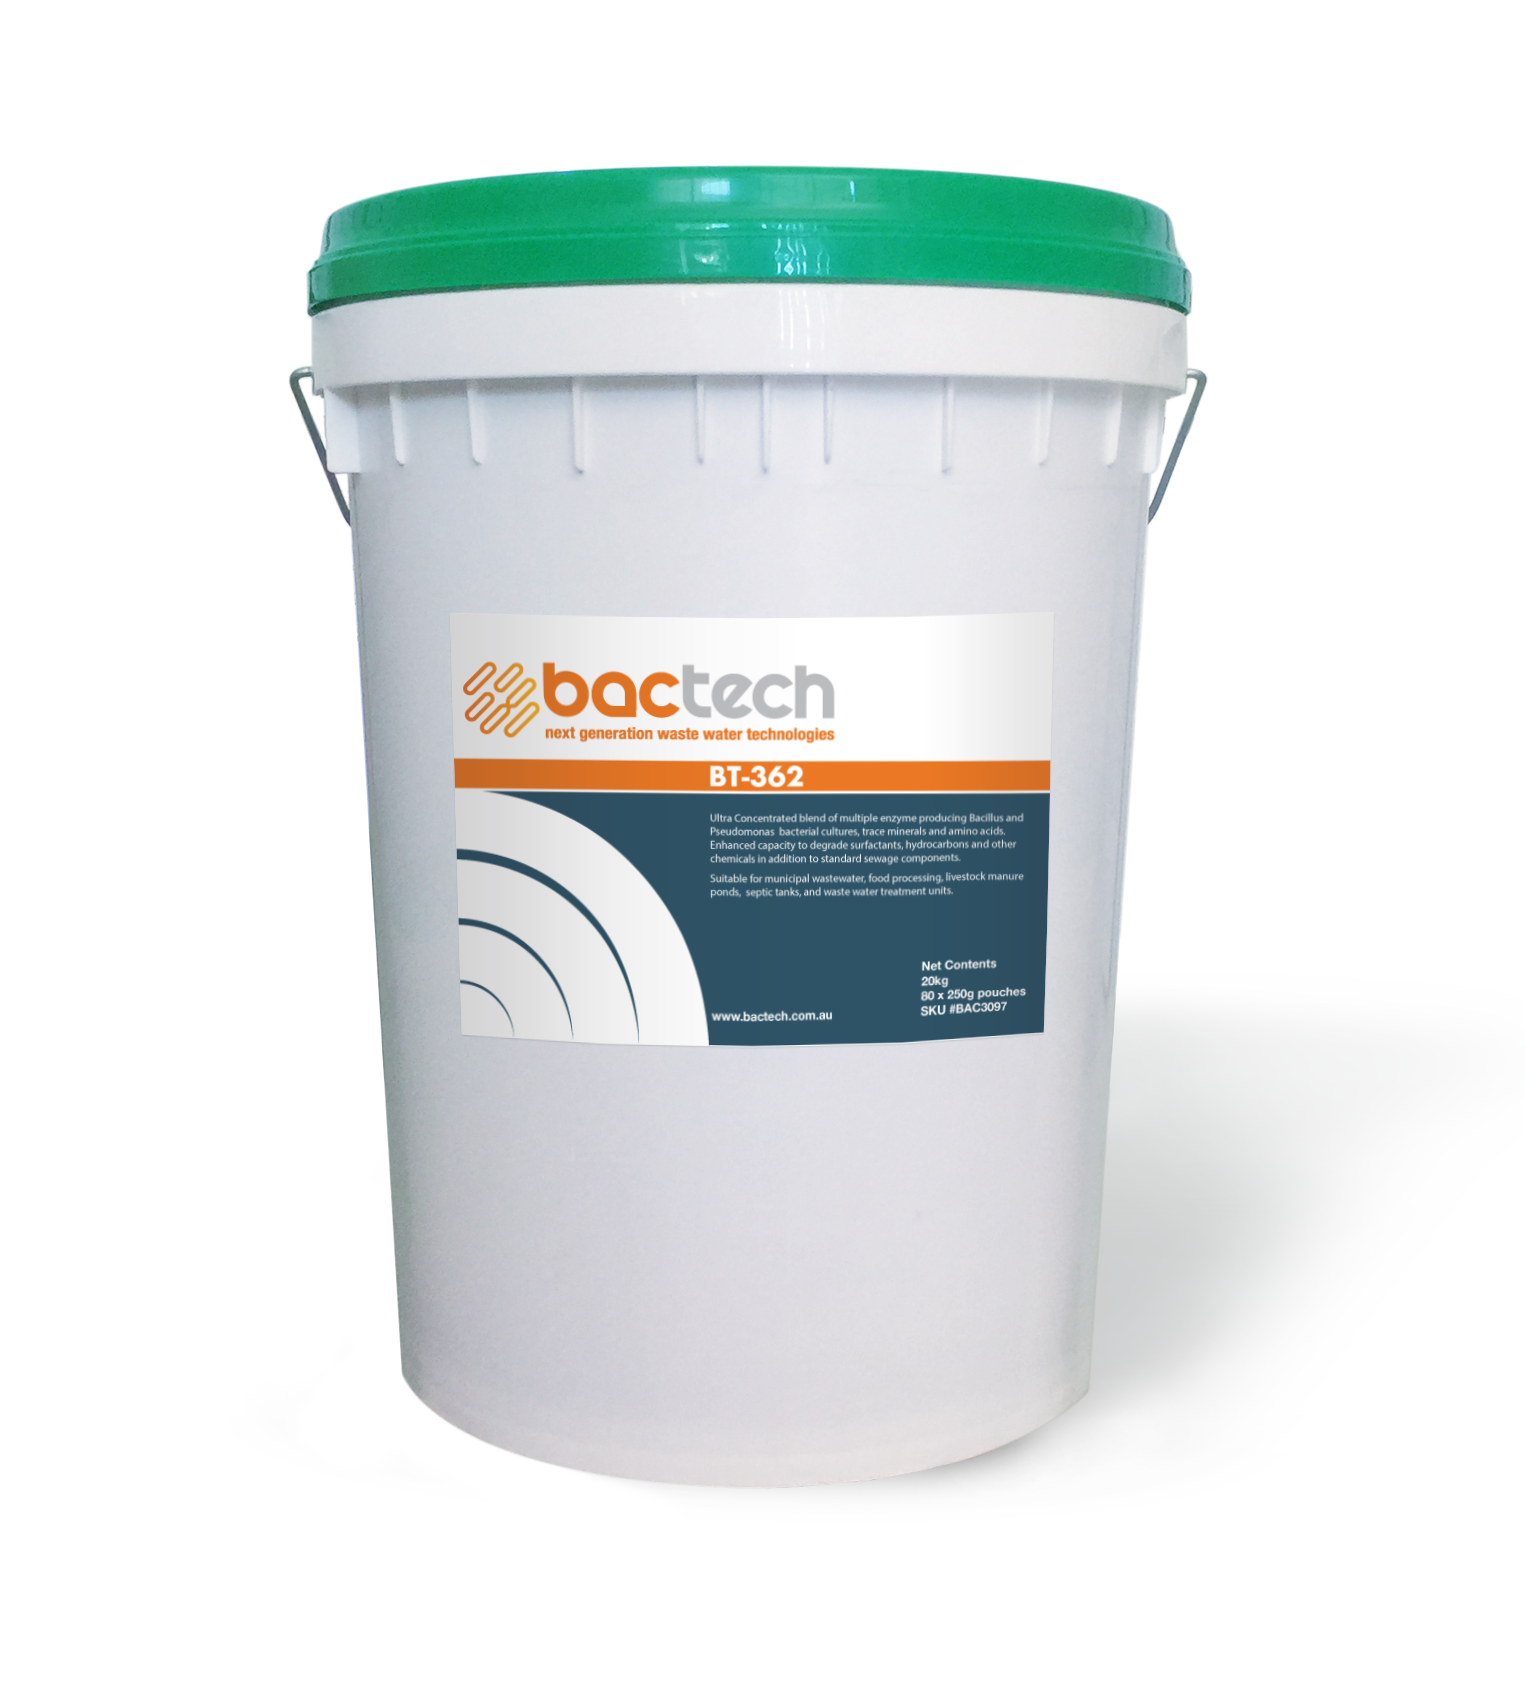 Bactech 362 - Bio bacterial Waste Water Treatment